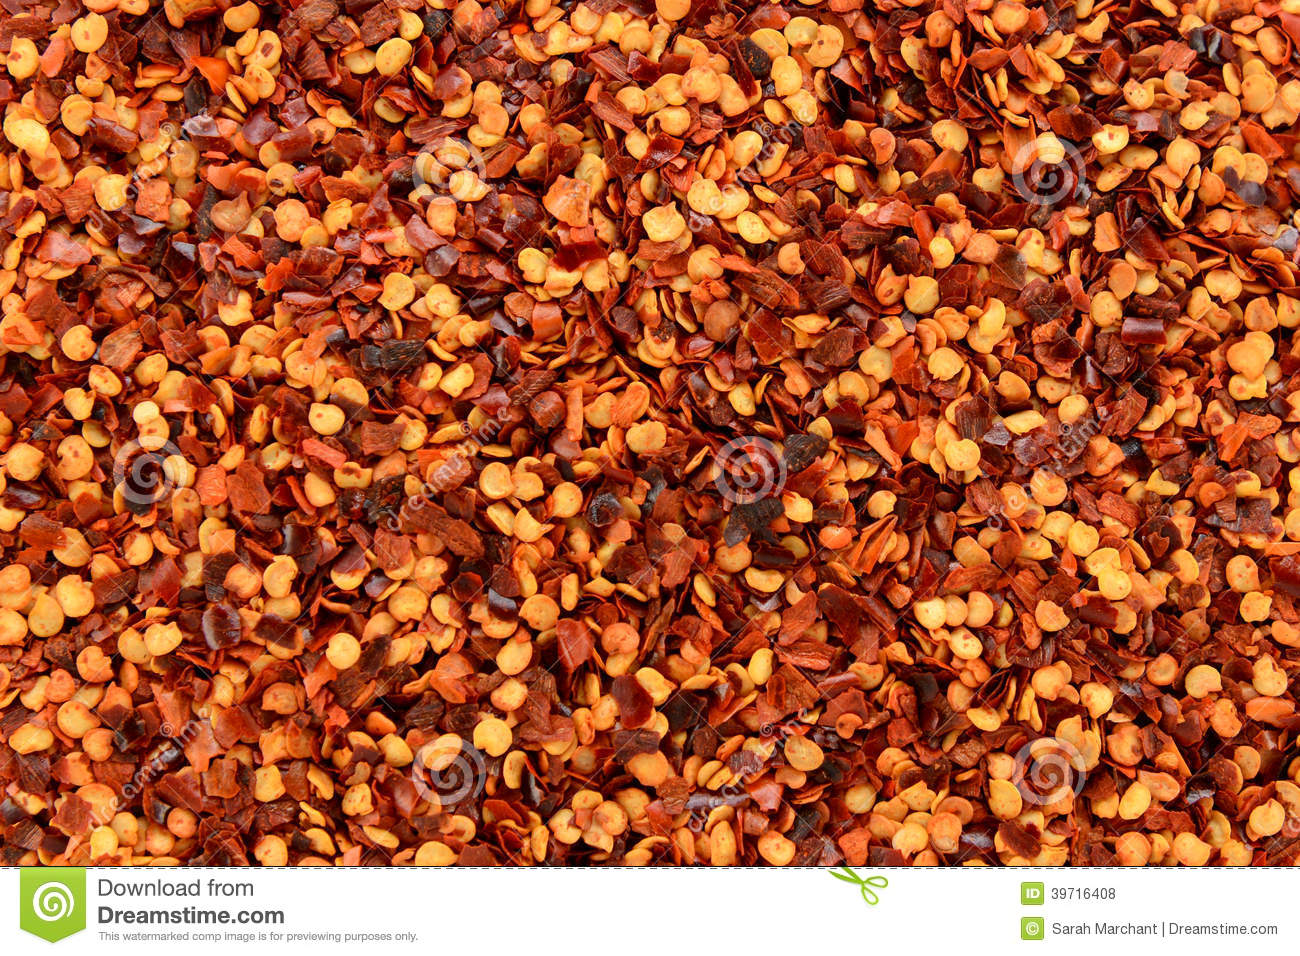 Dried chilli flakes and seeds abstract background texture for Chili flakes